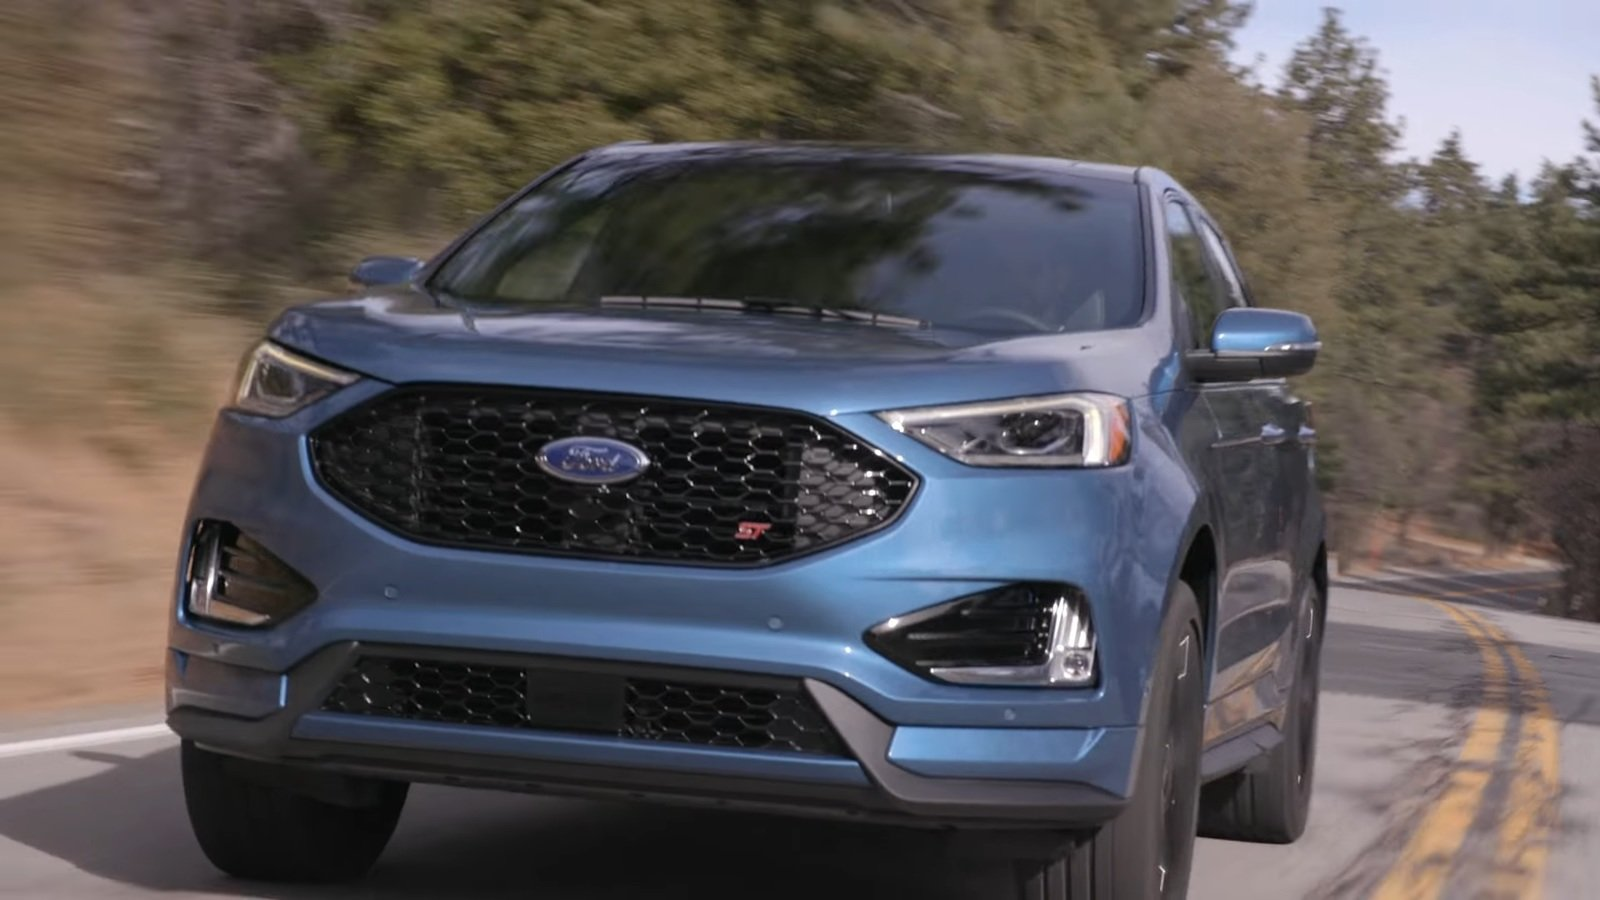 Photos and specifications of Ford Edge ST 2019 Sport Photos and specifications of Ford Edge ST 2019 Sport  D9 81 D9 88 D8 B1 D8 AF  D8 A7 D9 8A D8 AF D8 AC ST 2019  D8 A7 D9 84 D8 B1 D9 8A D8 A7 D8 B6 D9 8A D8 A9